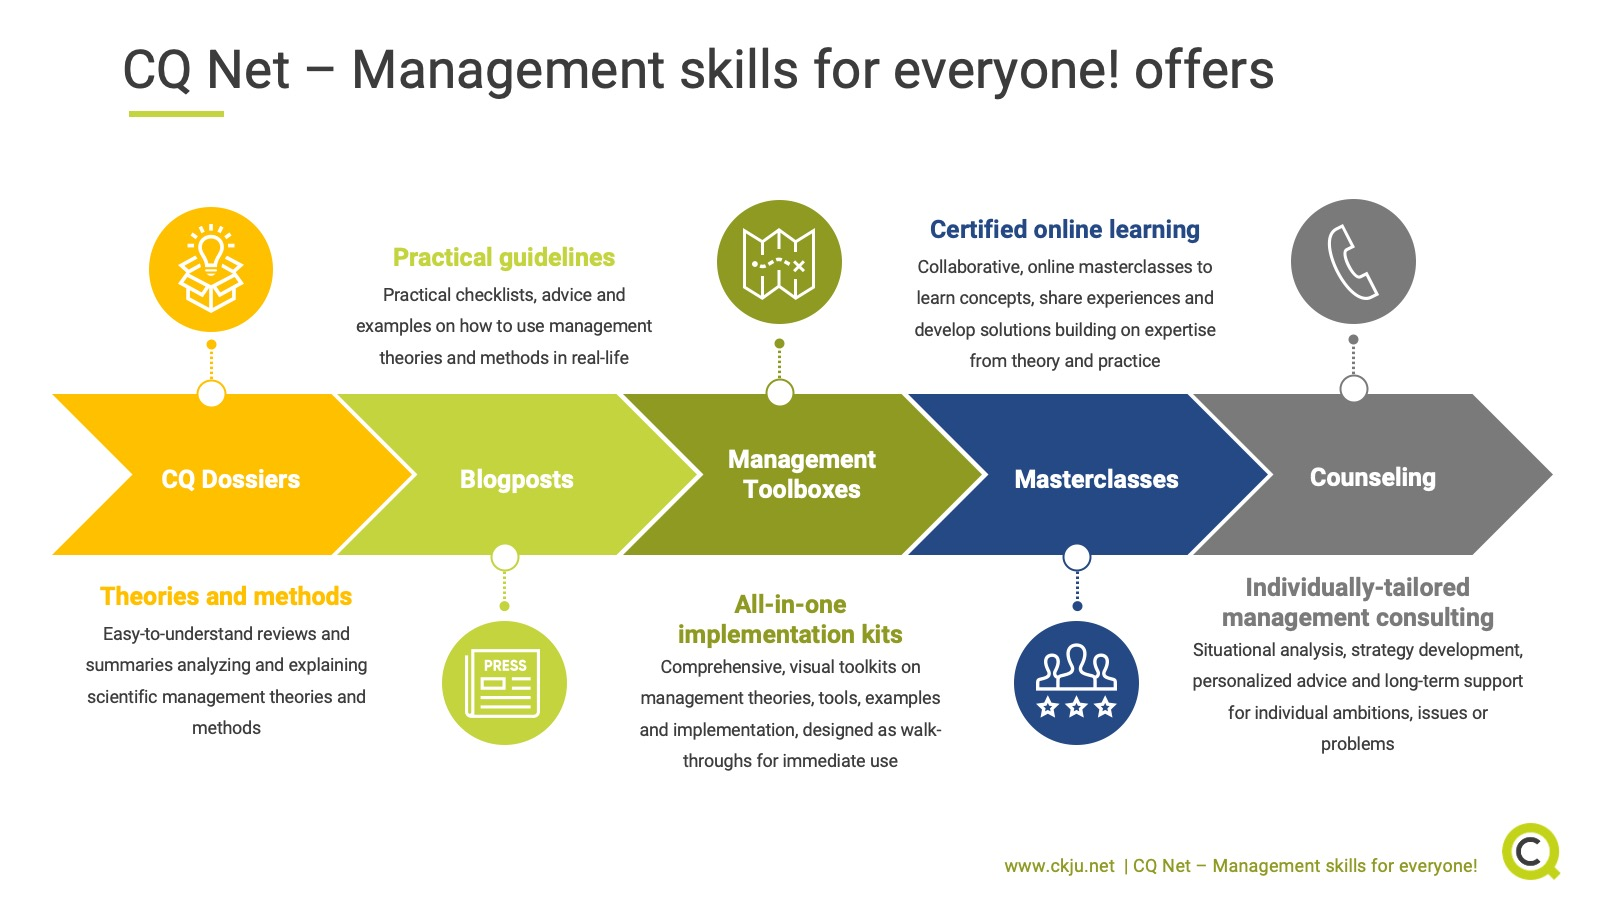 CQ Net - Management skills for everyone! offers